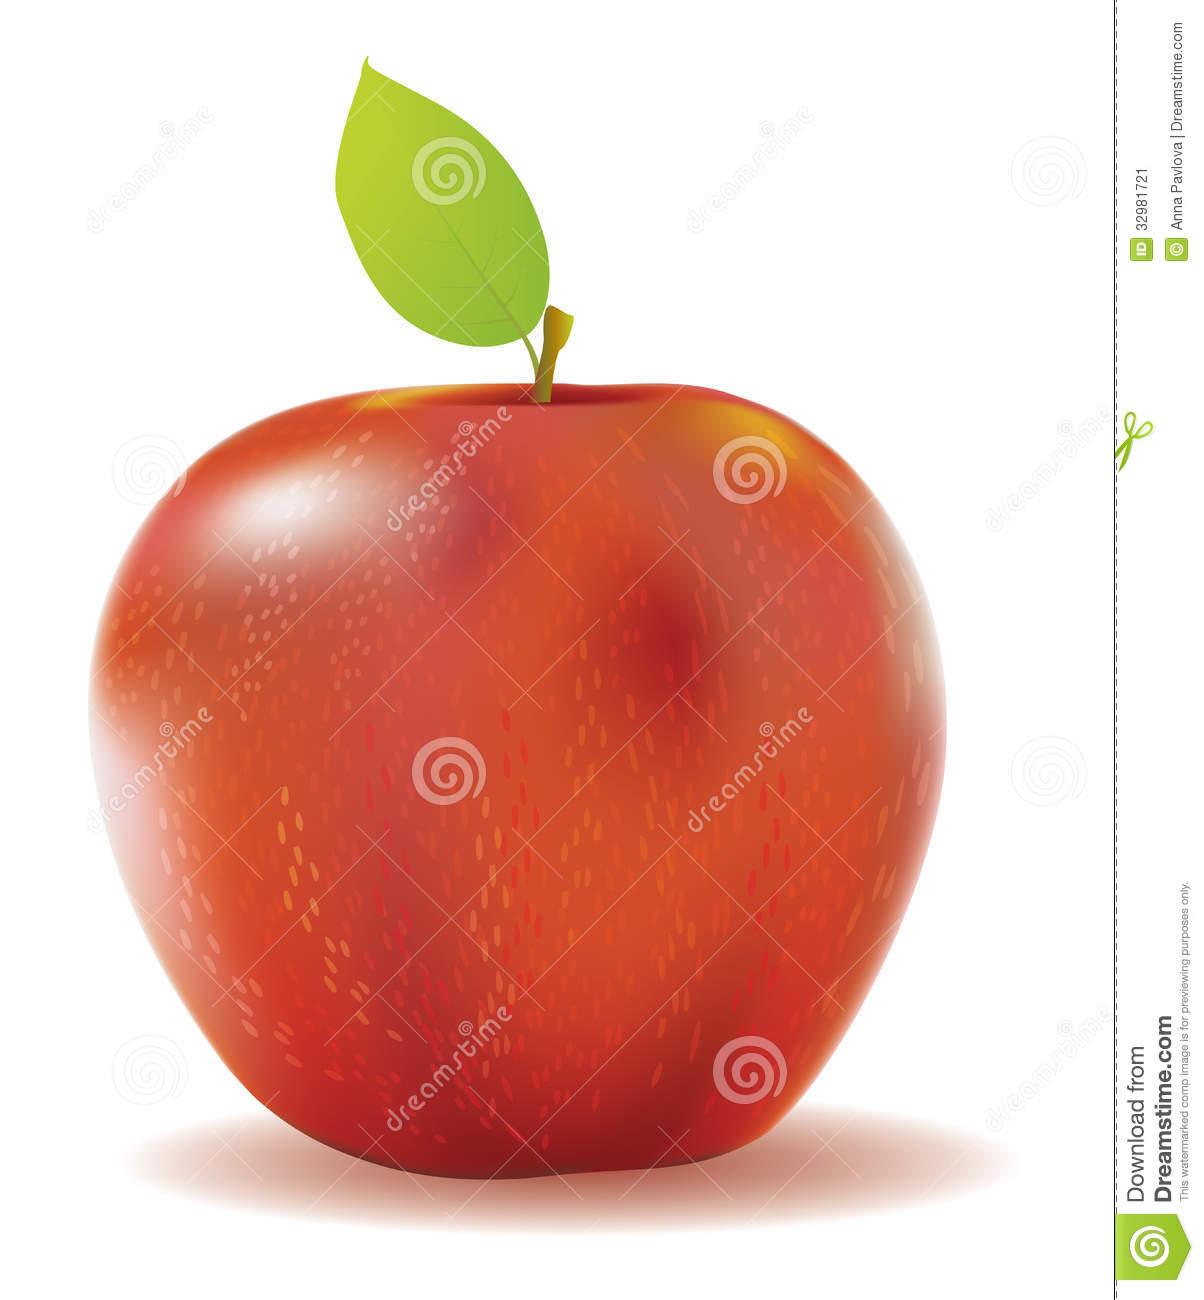 delicious green apple illustration - photo #37